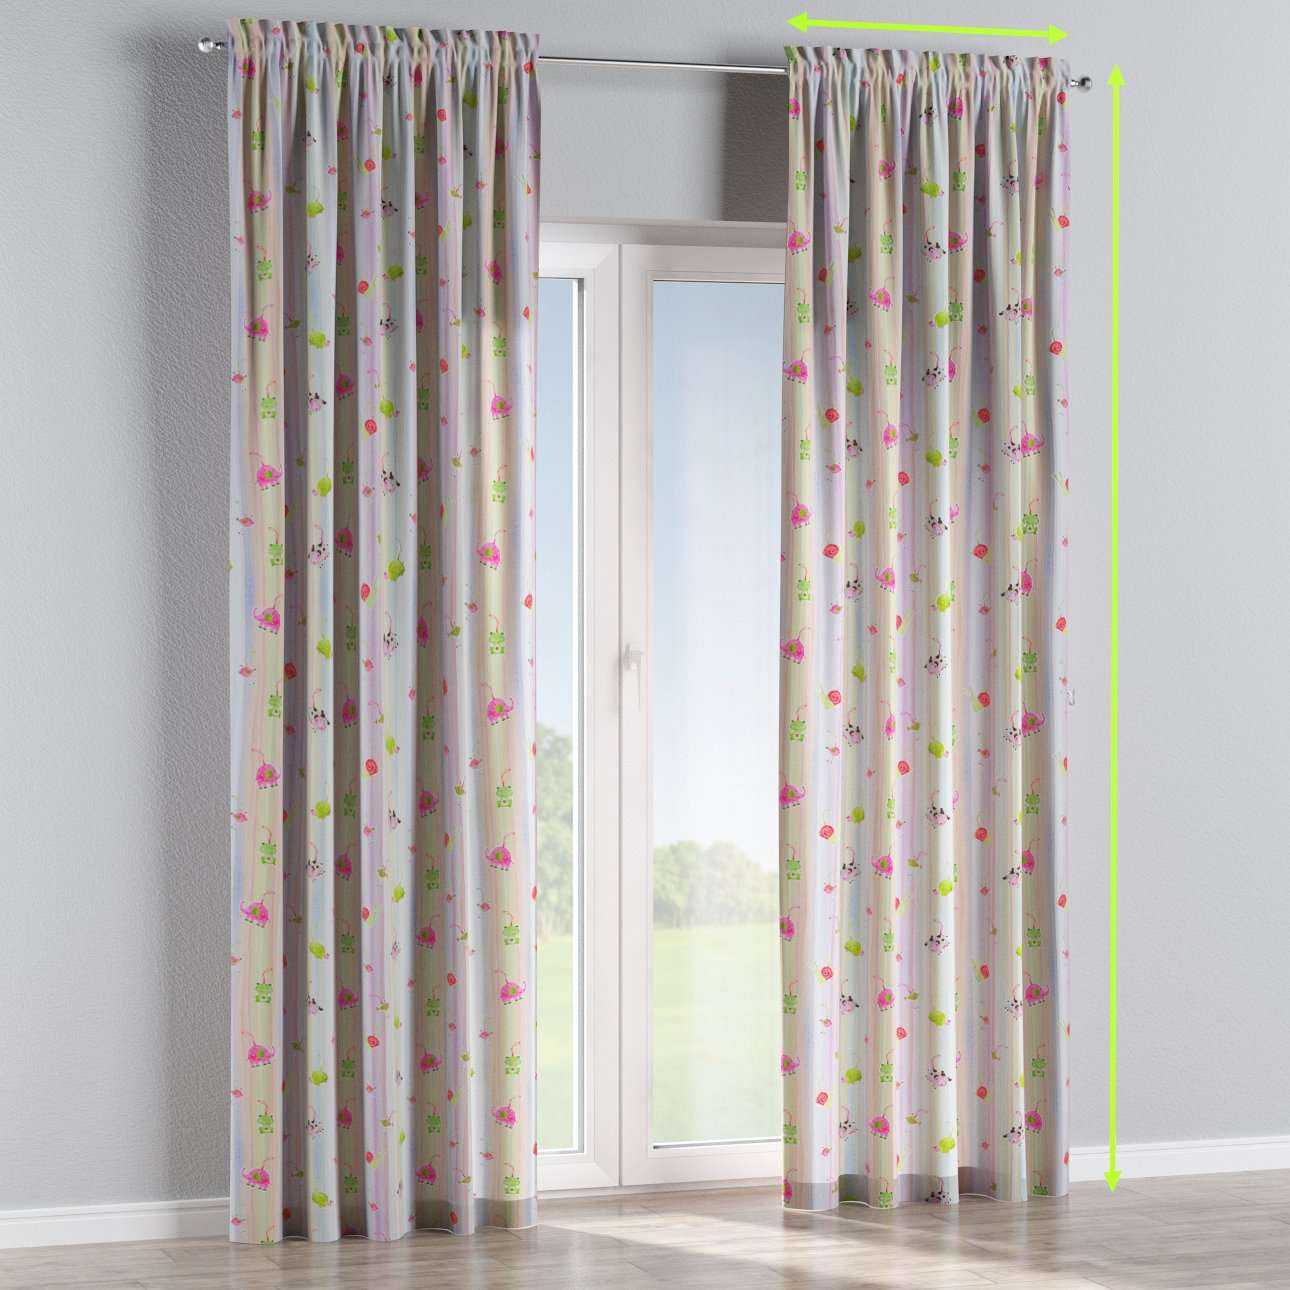 Slot and frill lined curtains in collection Apanona, fabric: 151-05